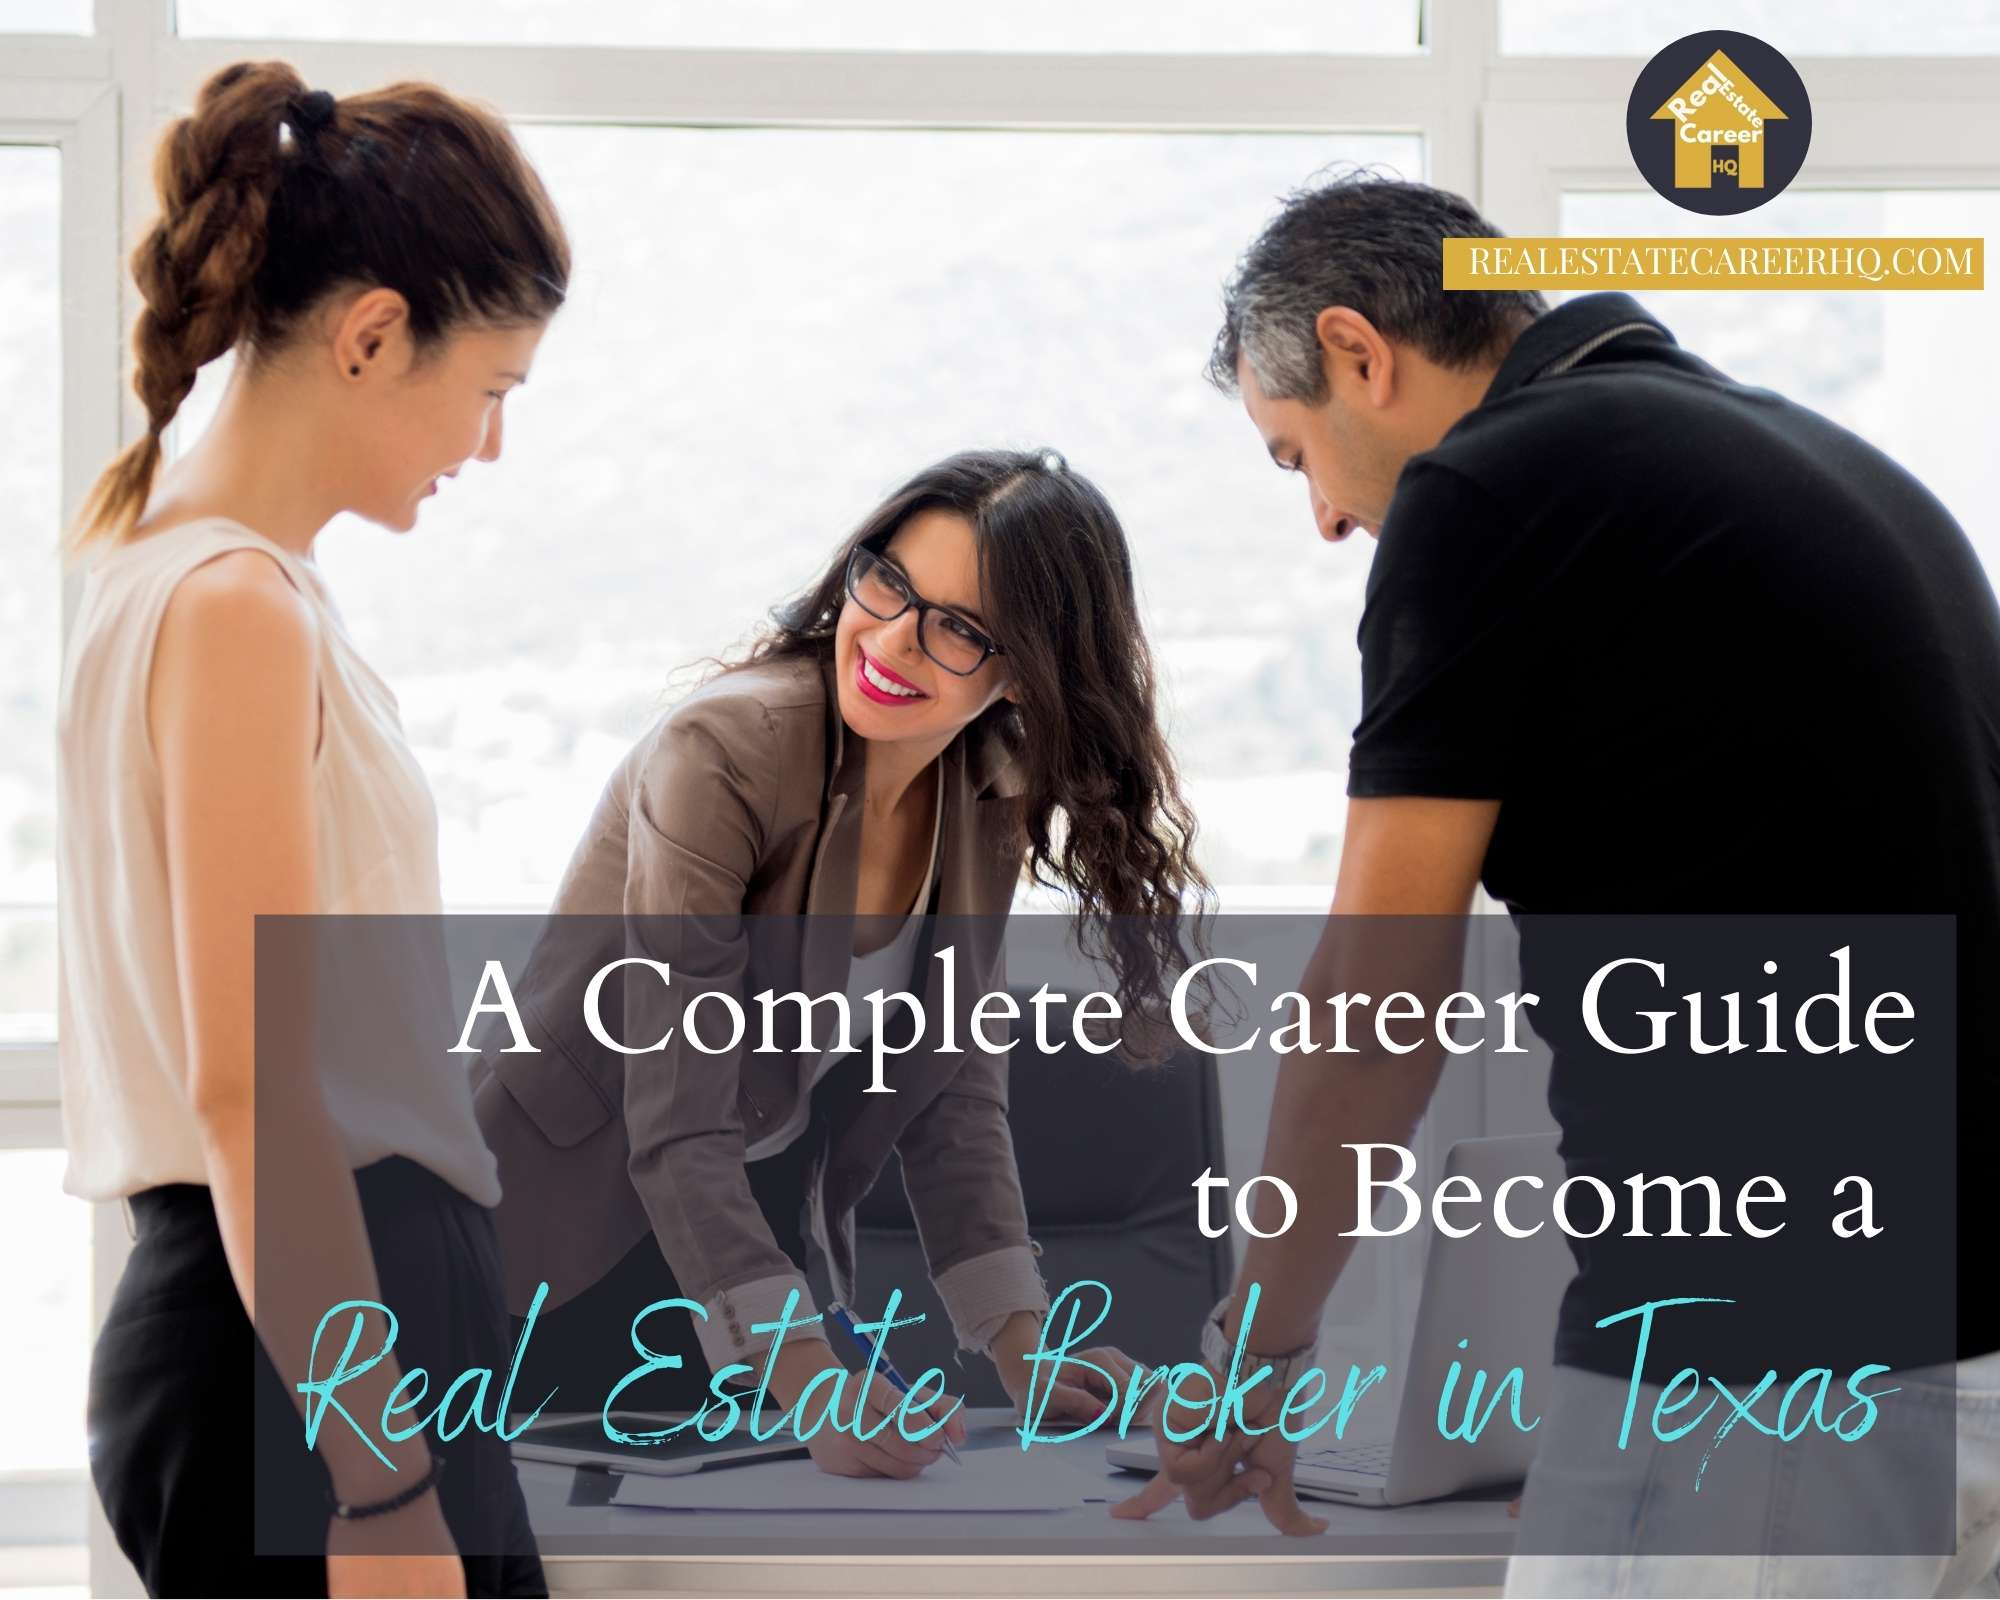 How to become a real estate broker in Texas